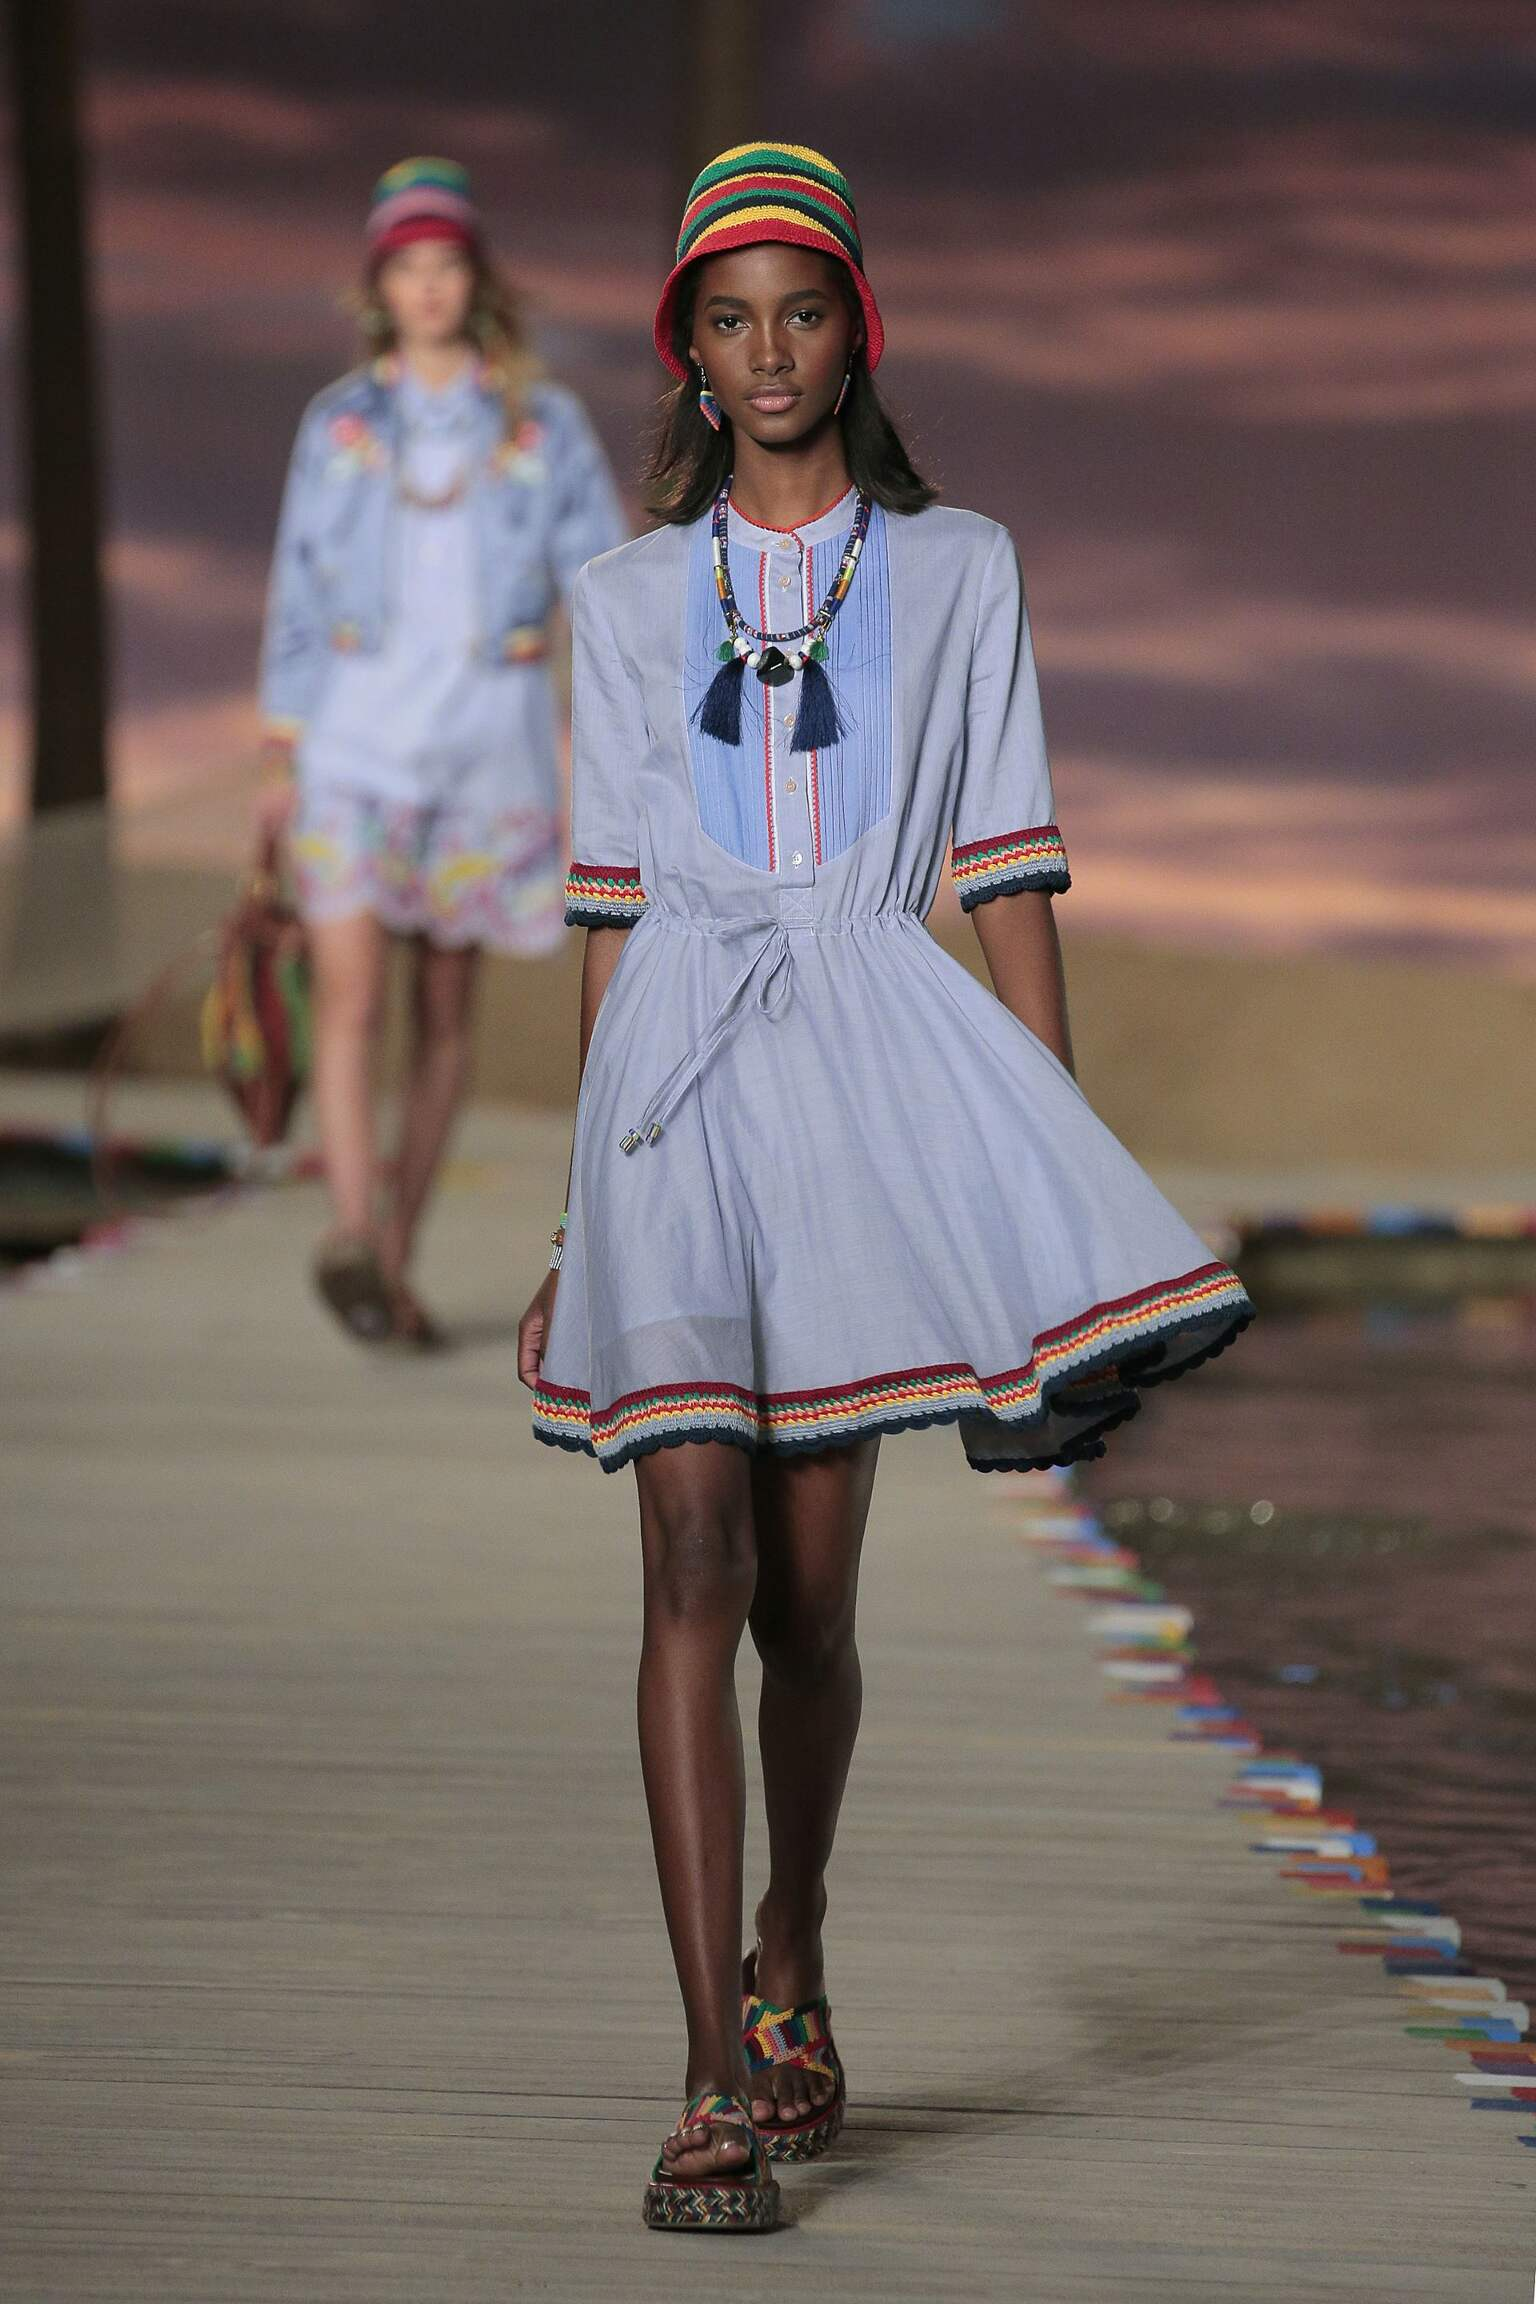 TOMMY HILFIGER SPRING SUMMER 2016 WOMEN'S COLLECTION | The